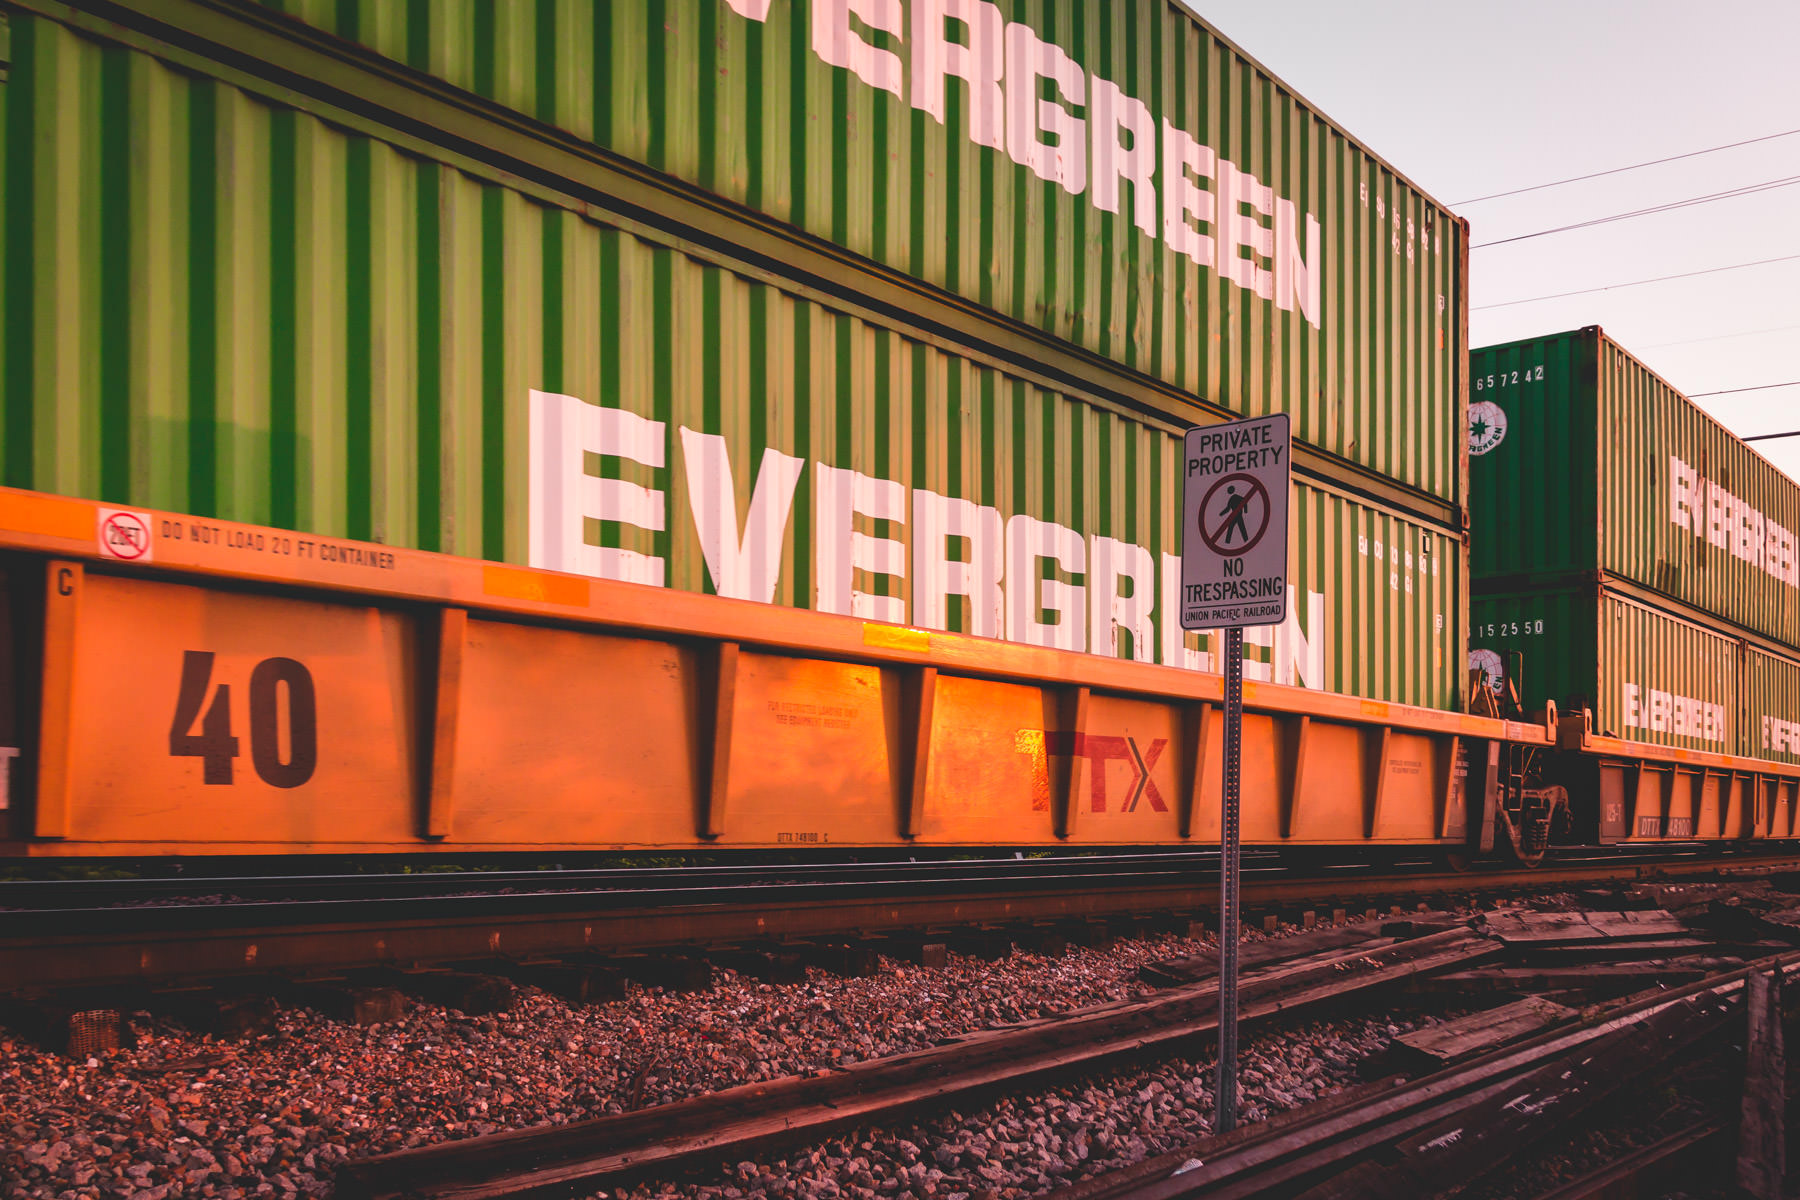 Railcars laden with containers slowly rumble along West Dallas train tracks.